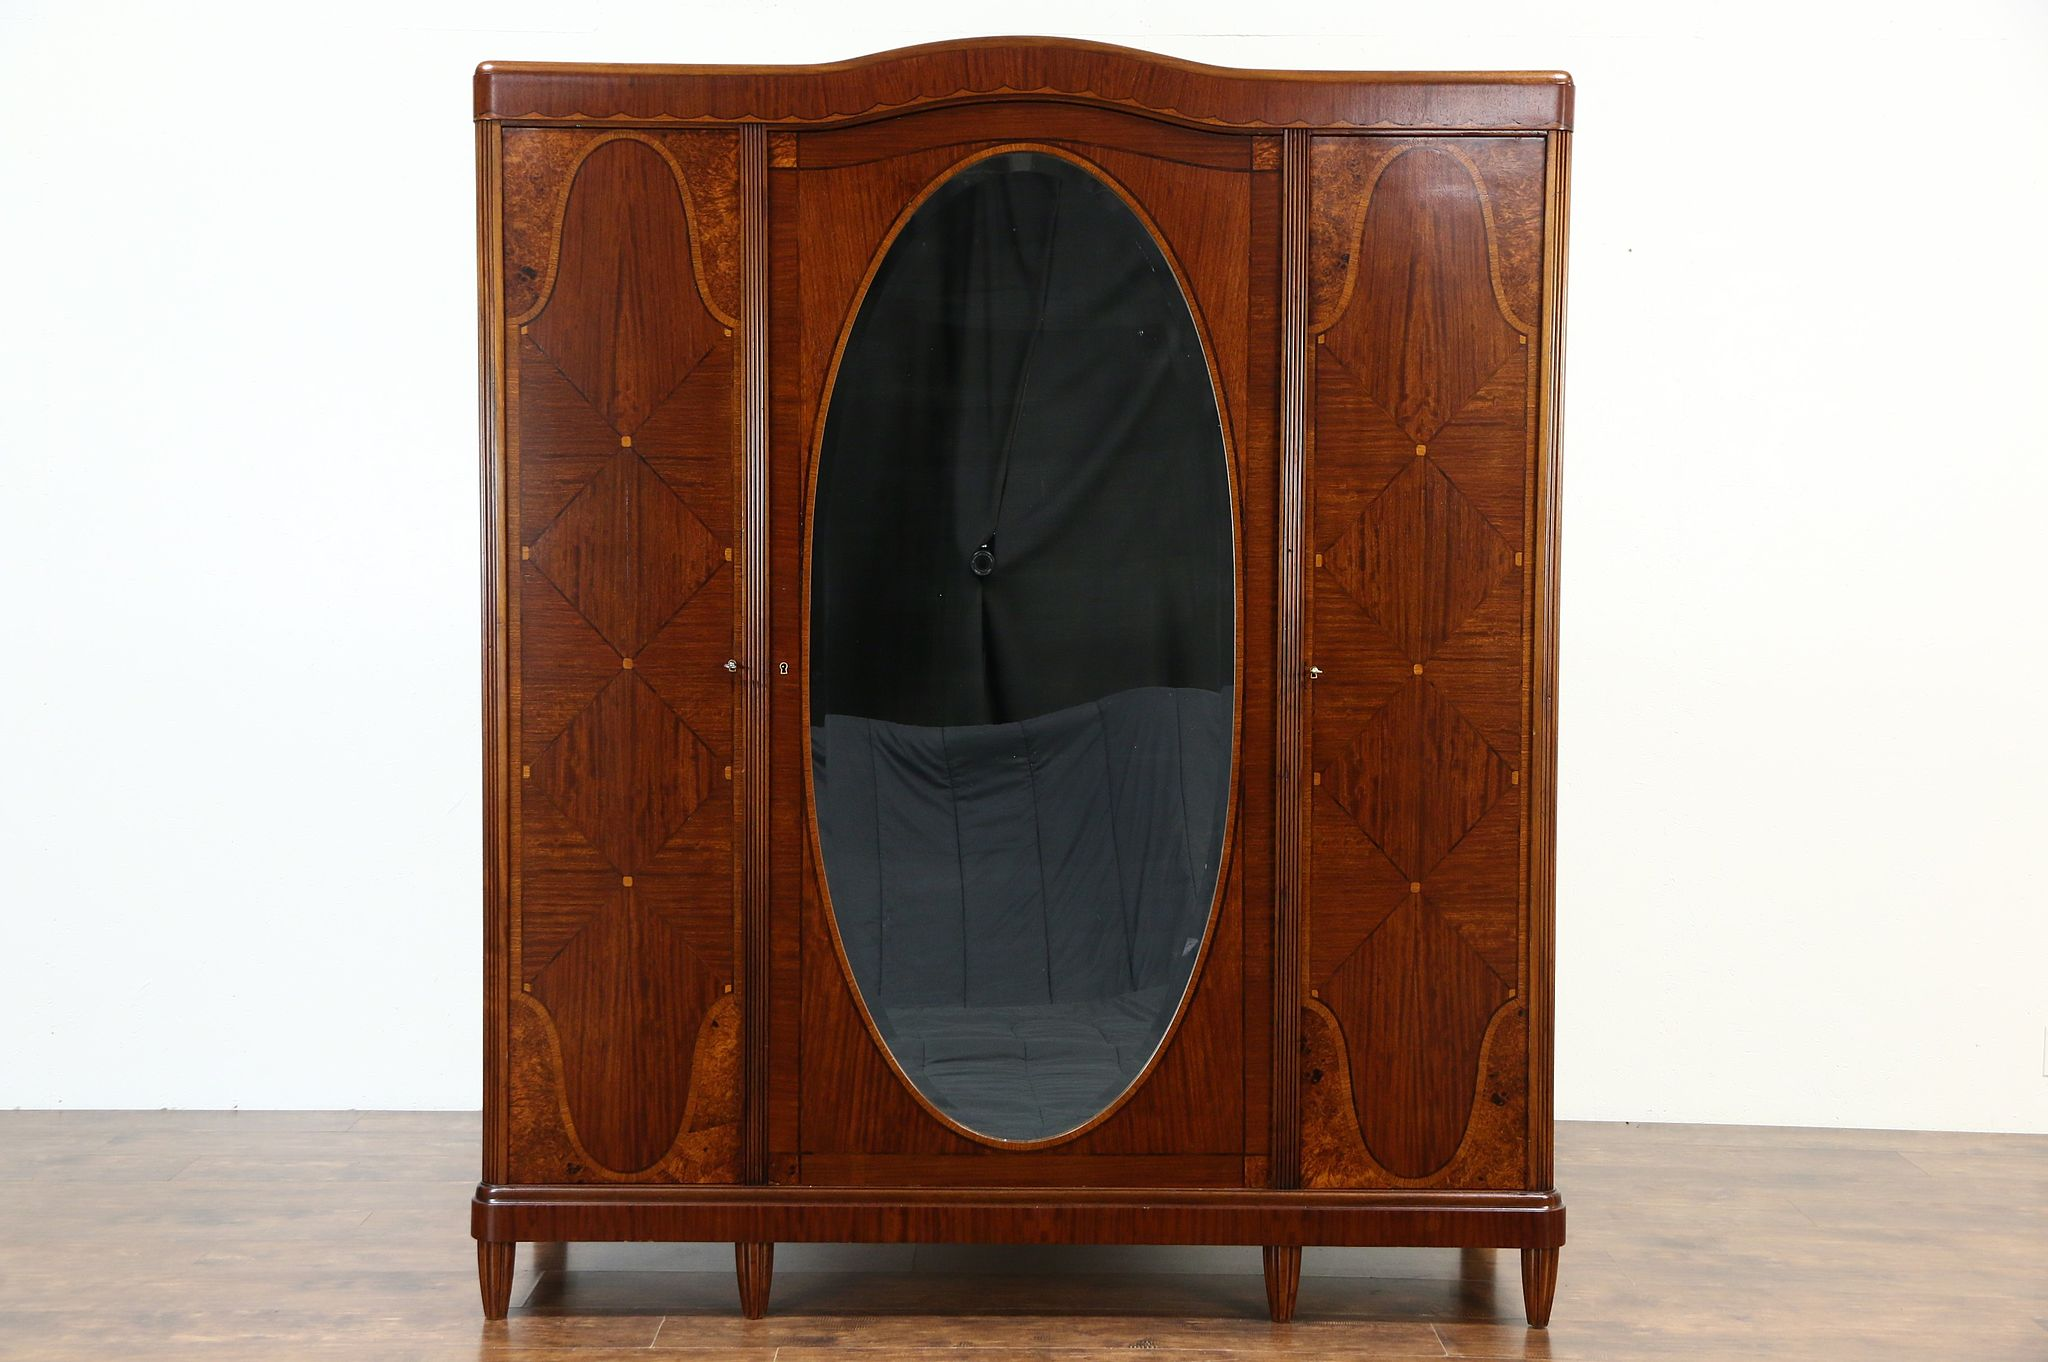 Sold Armoire Wardrobe Or Closet 1925 English Art Deco Rosewood Marquetry Harp Gallery Antiques Furniture